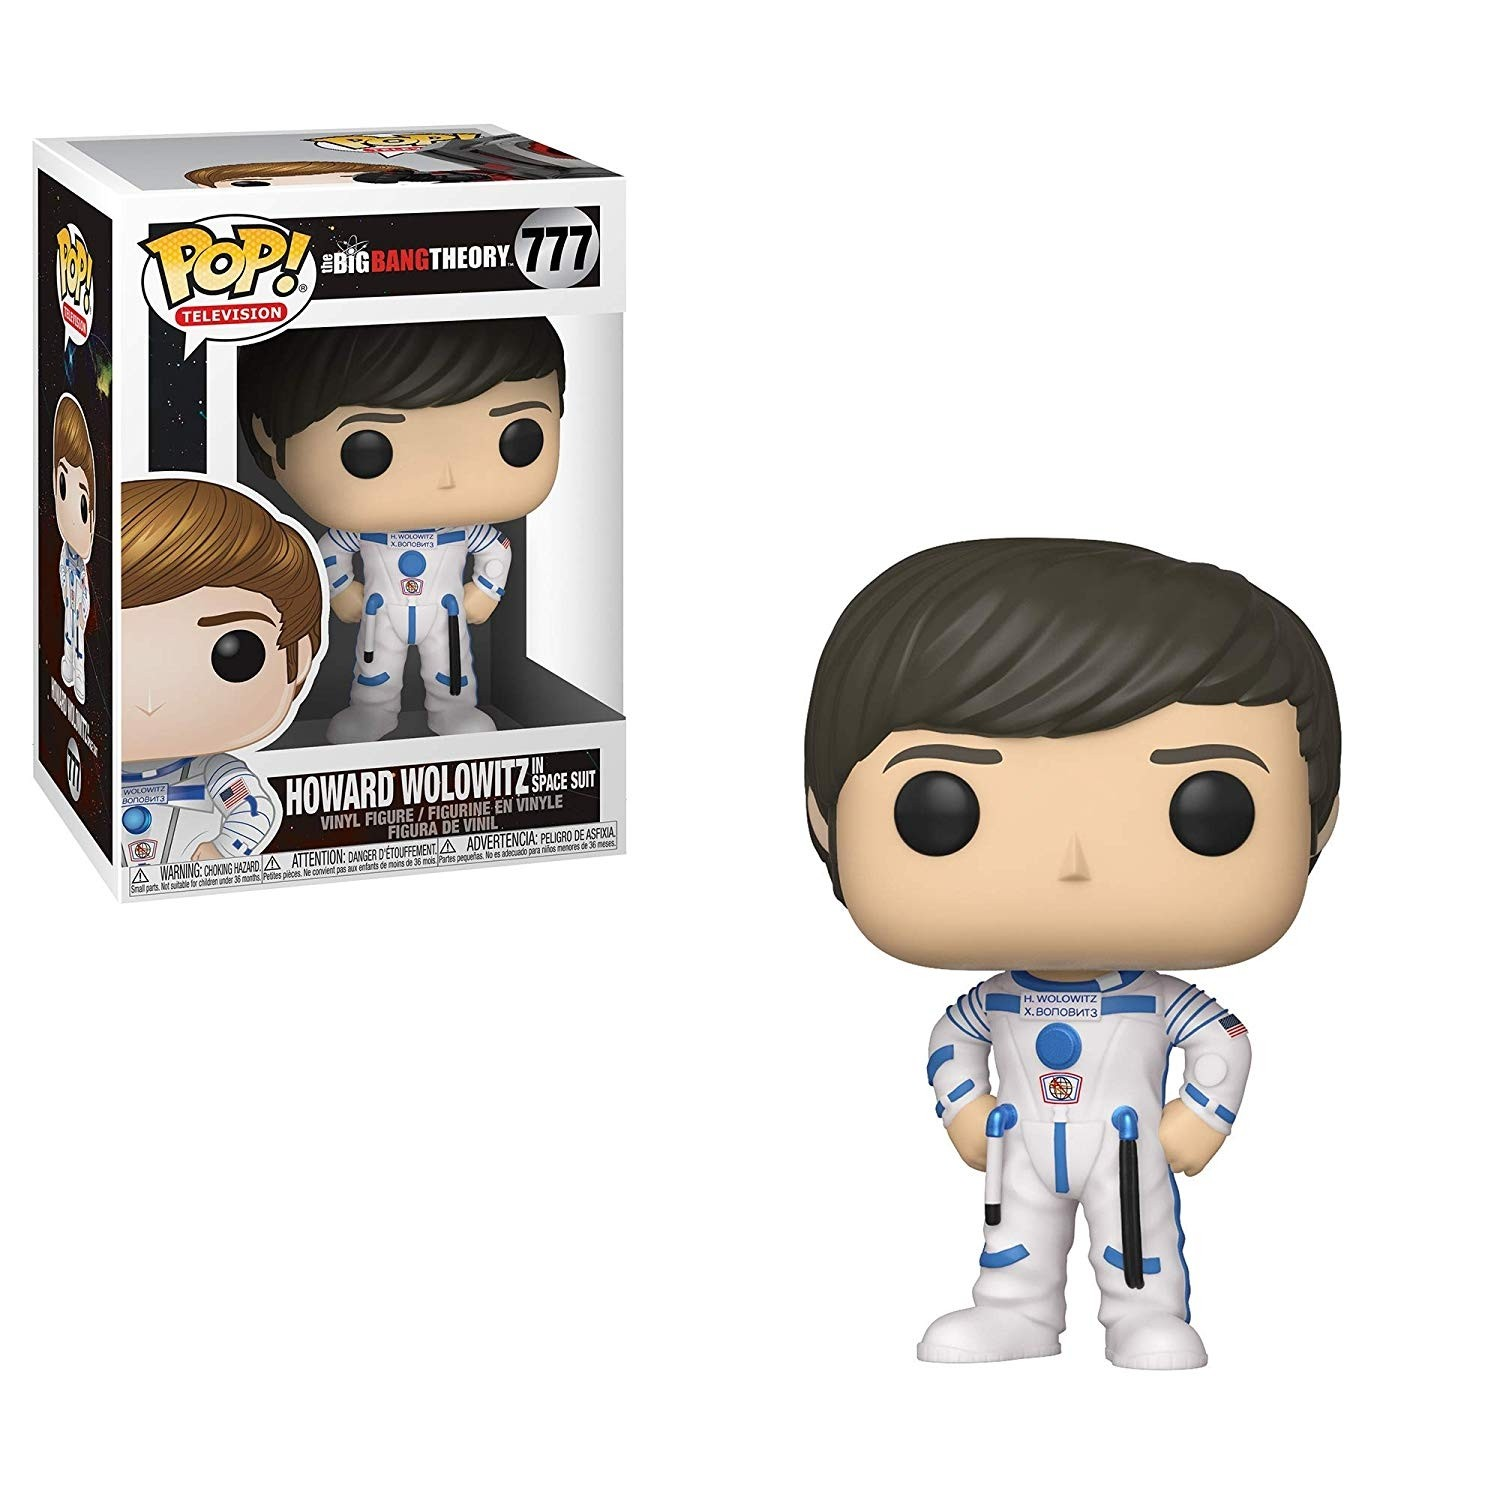 POP! Vinyl: The Big Bang Theory: Howard Wolowitz in Space Suit